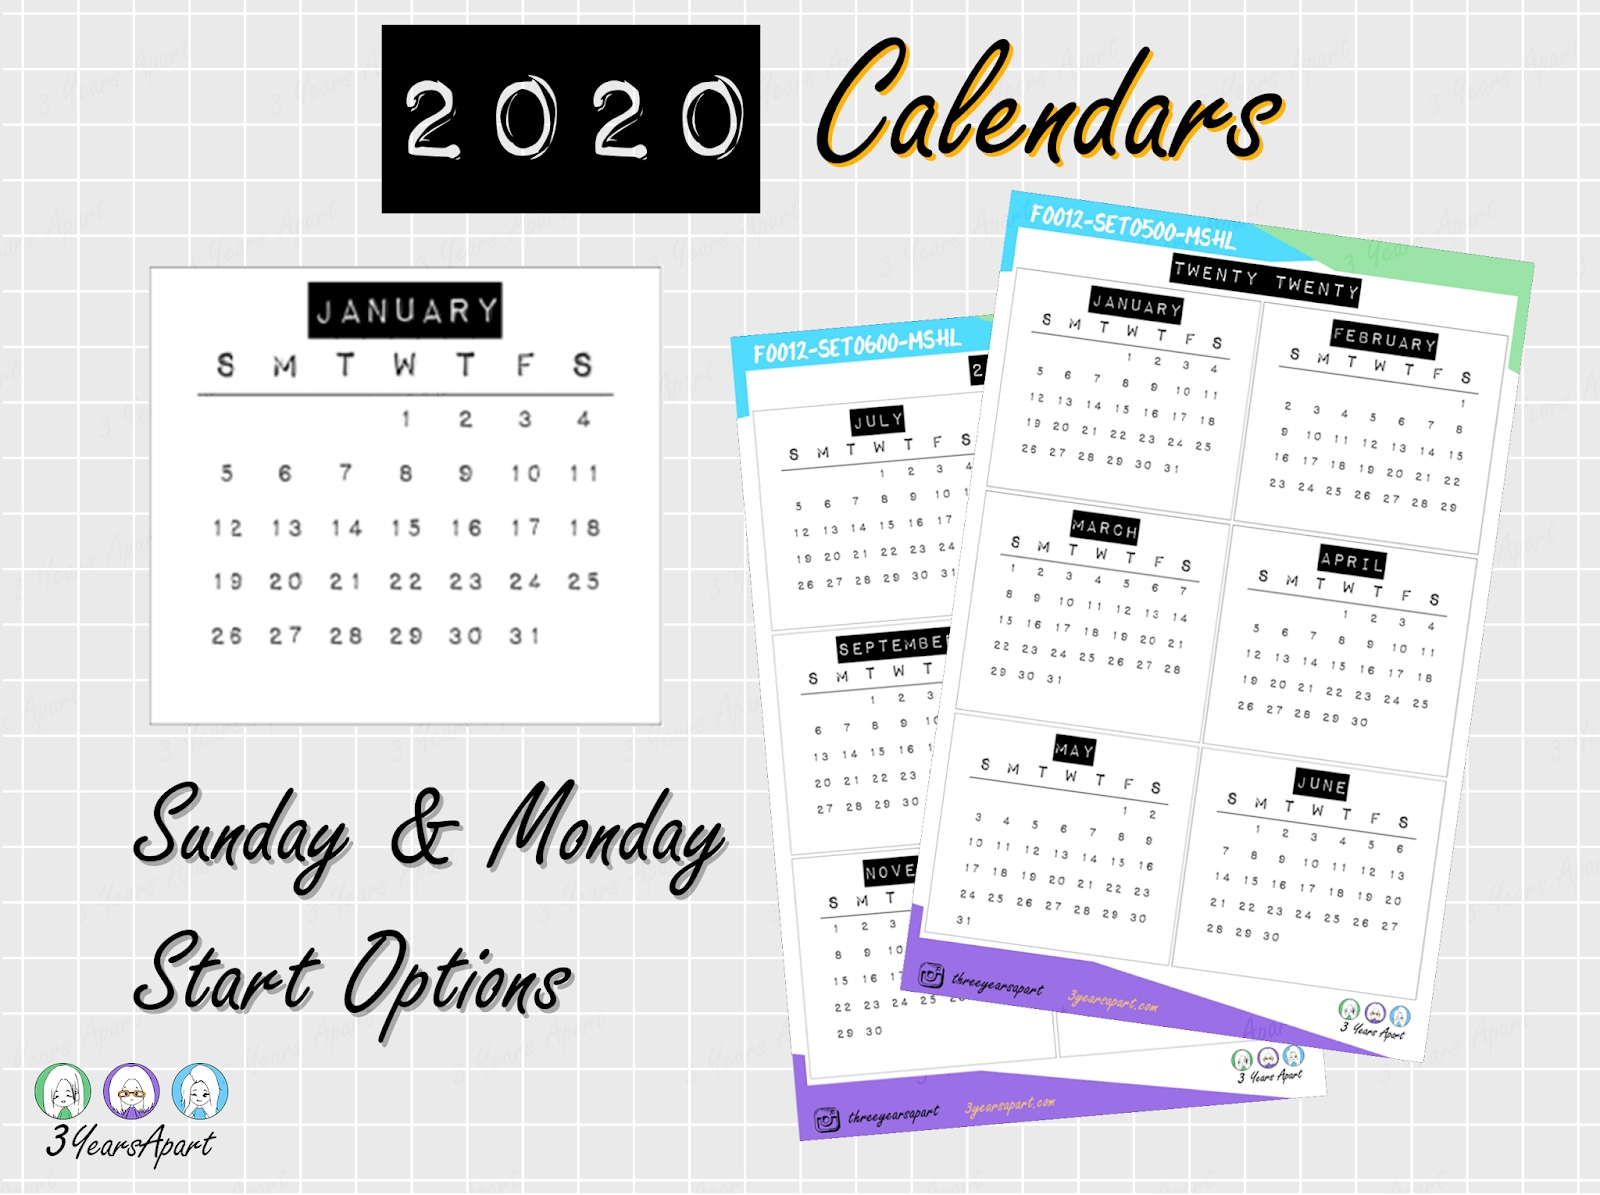 2020 Yearly Calendar Free Printable | Bullet Journal And regarding 2020 Free Year At A Glance Printable